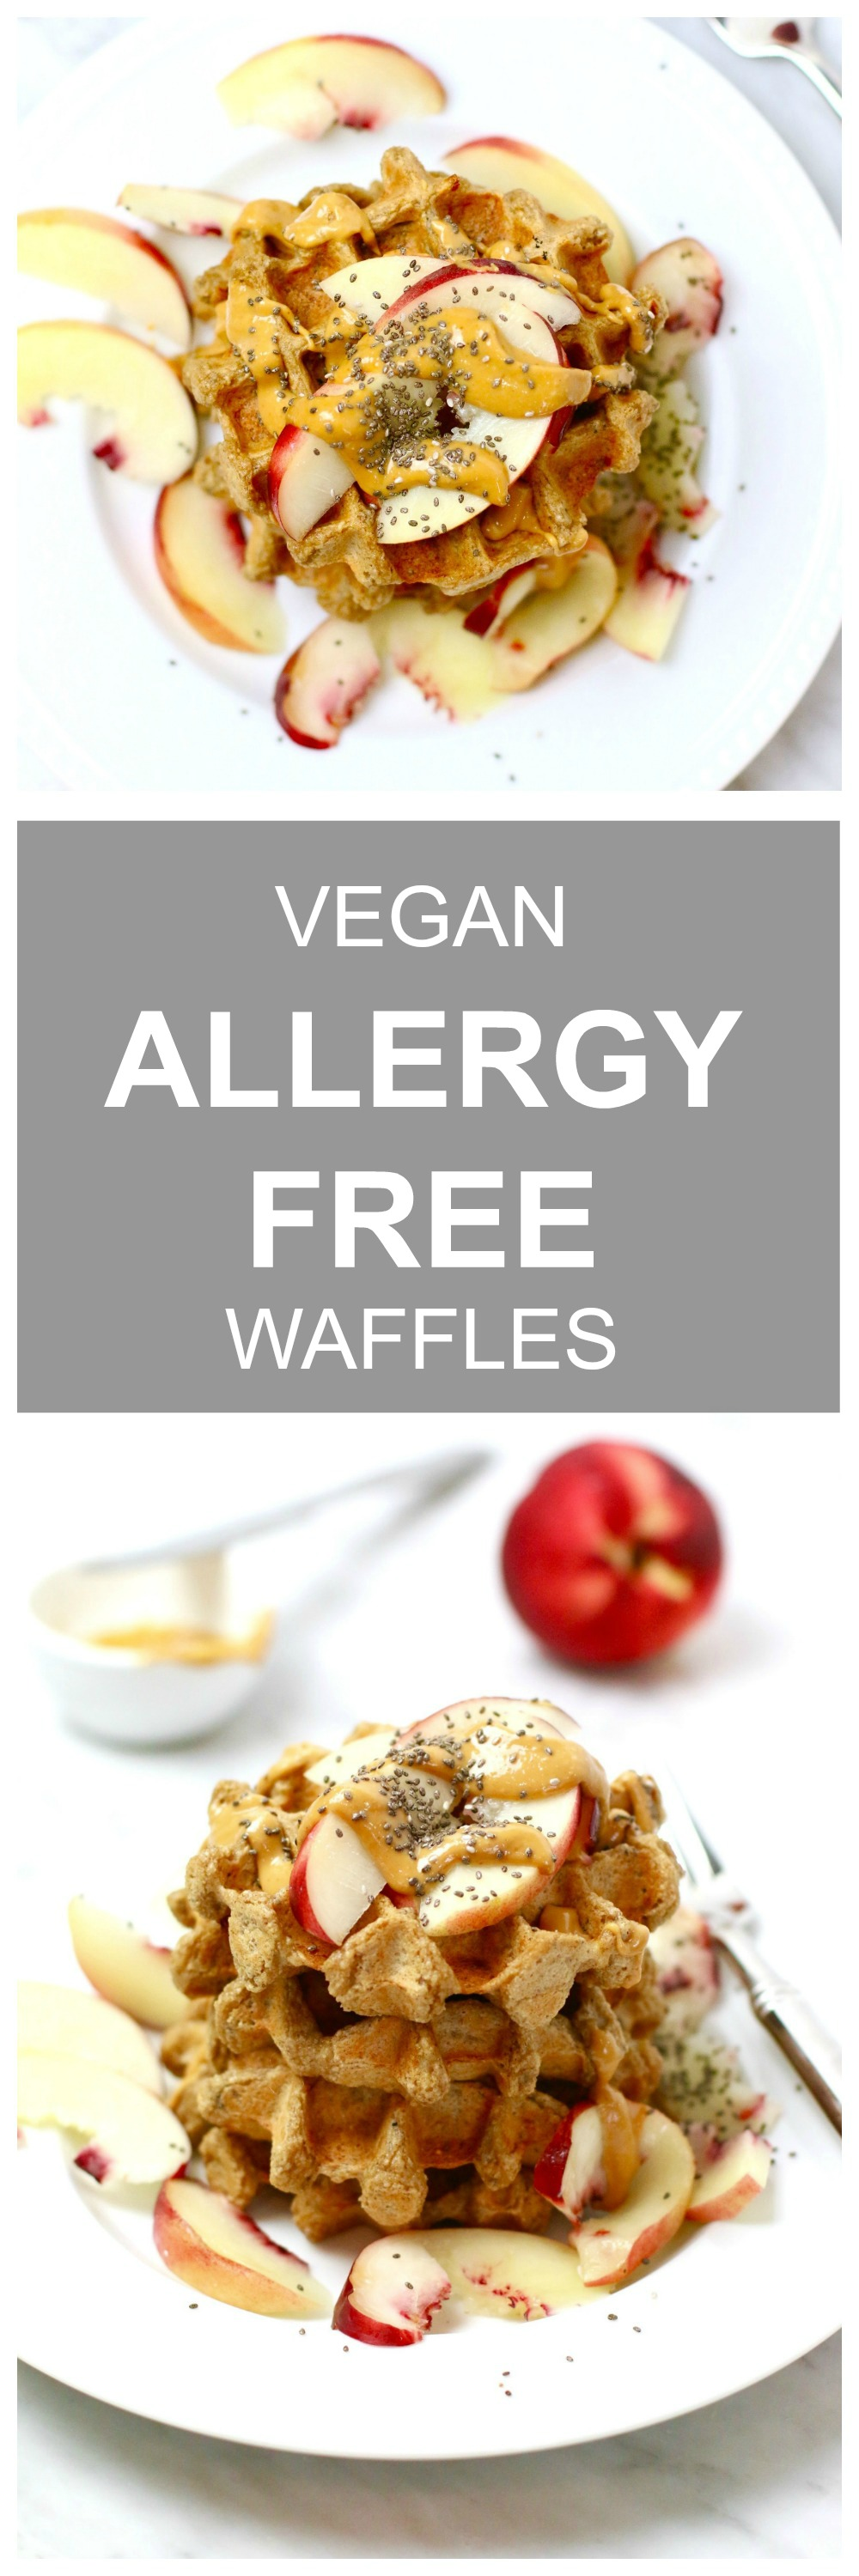 allergy-free-vegan-waffles